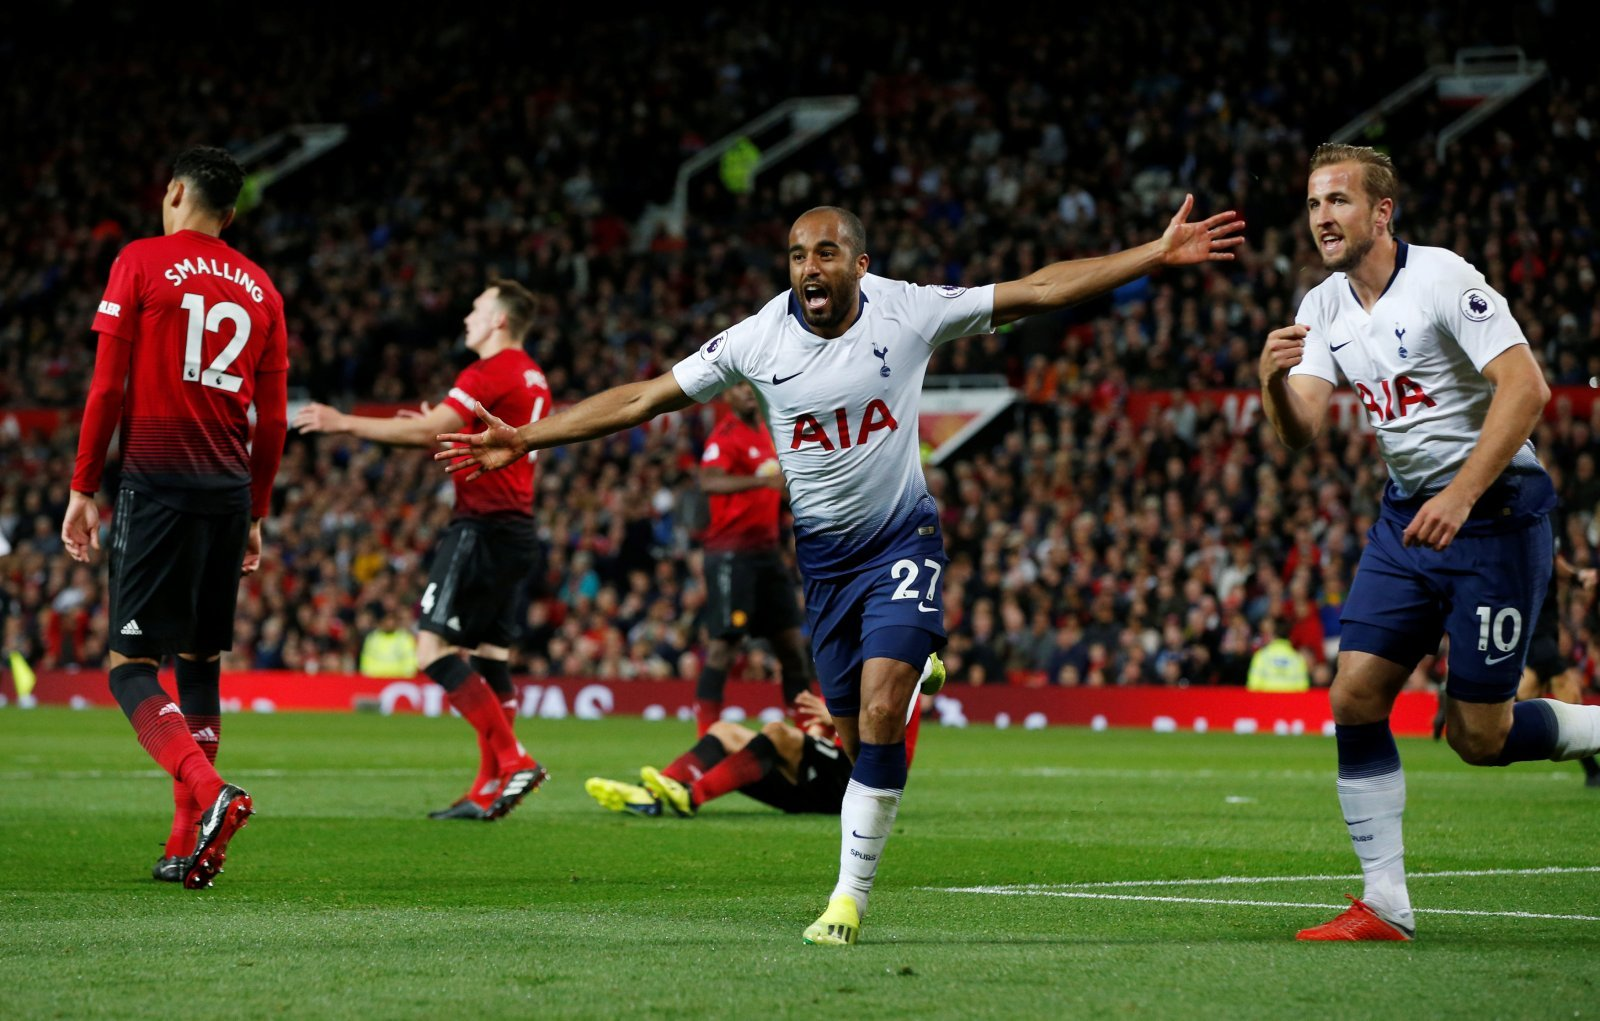 Jamie Carragher is spot on about Lucas Moura at Tottenham